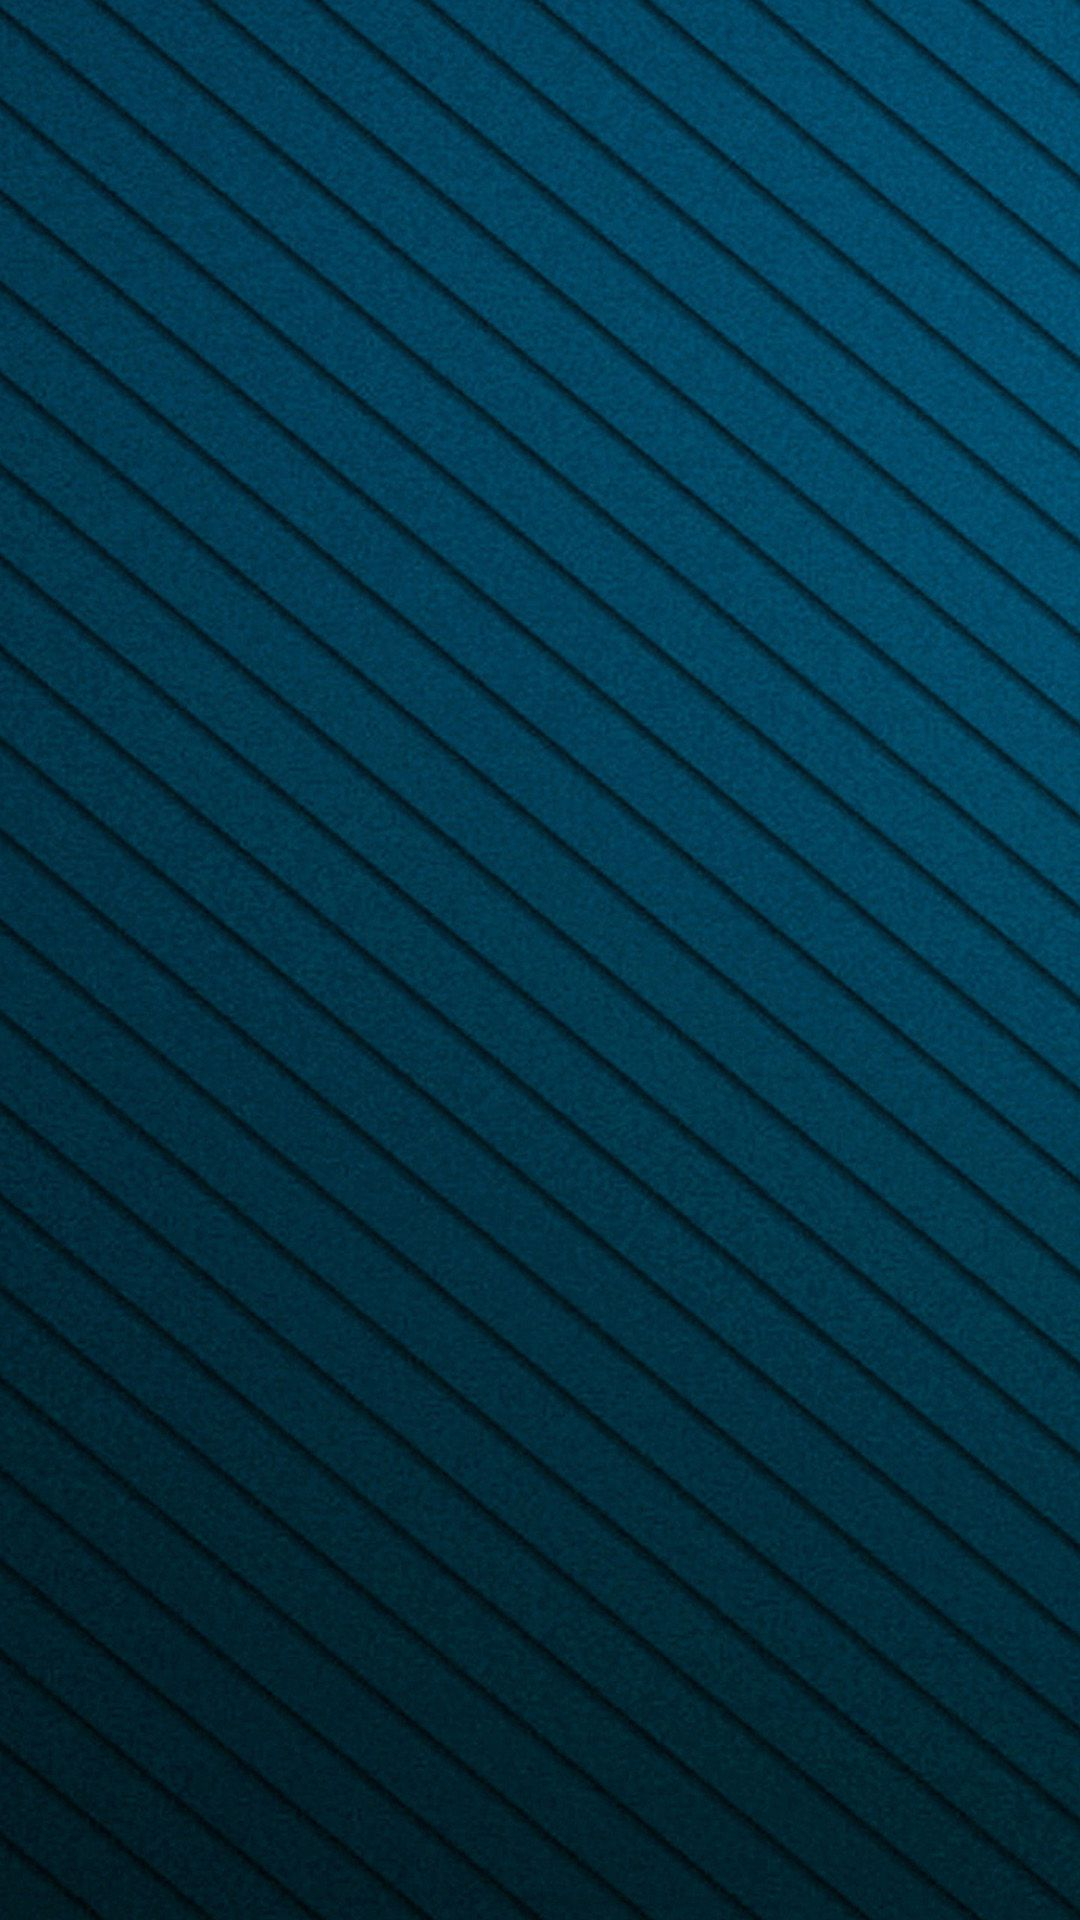 Samsung Galaxy S5 Wallpapers - Texture (25) - Shy Android